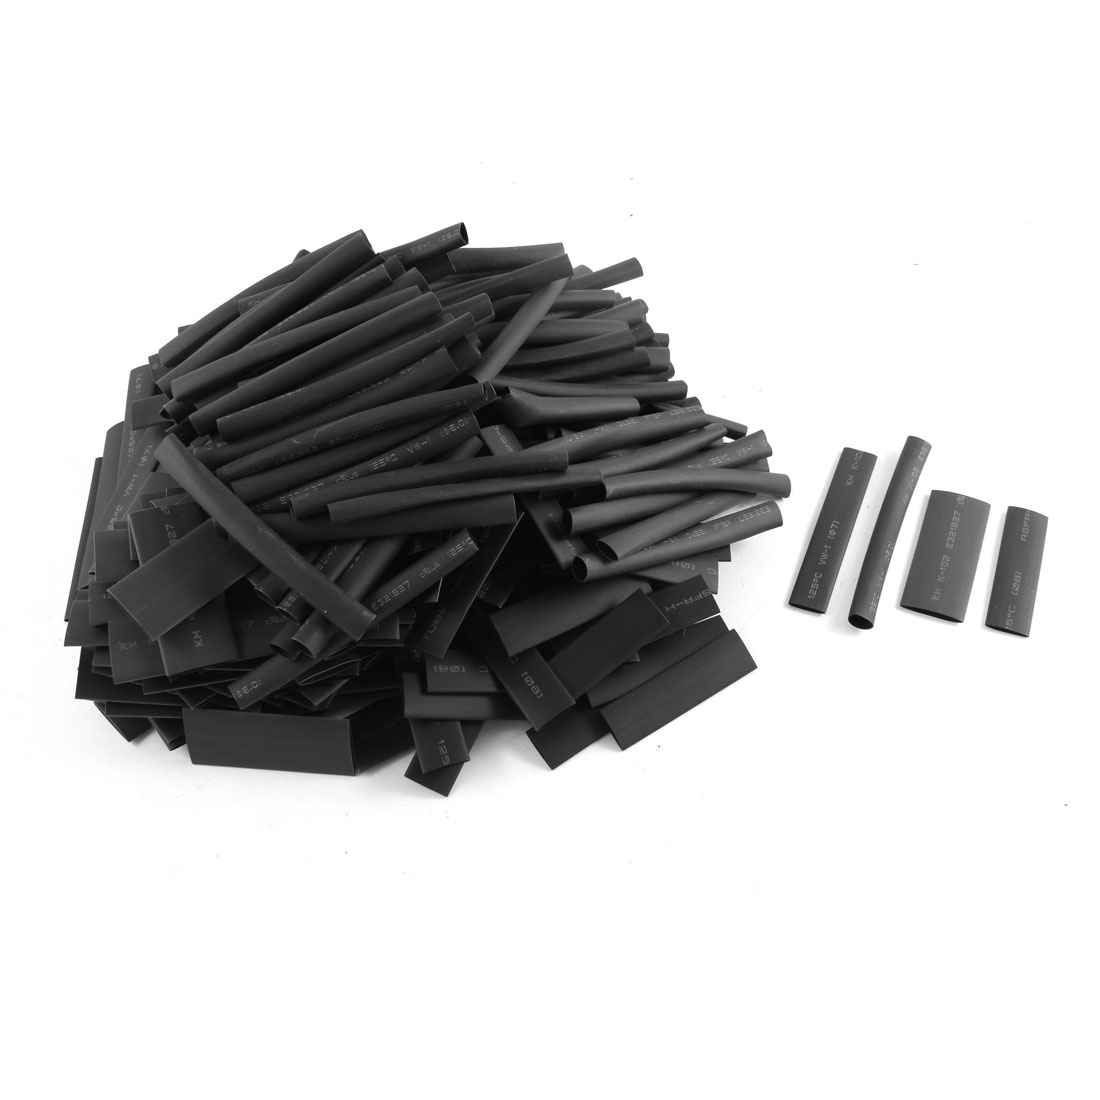 400pcs Black 2:1 Heat Shrink Tubing Shrinkable Tube Pipe Cable Sleeve Cover Wrap 4 Sizes